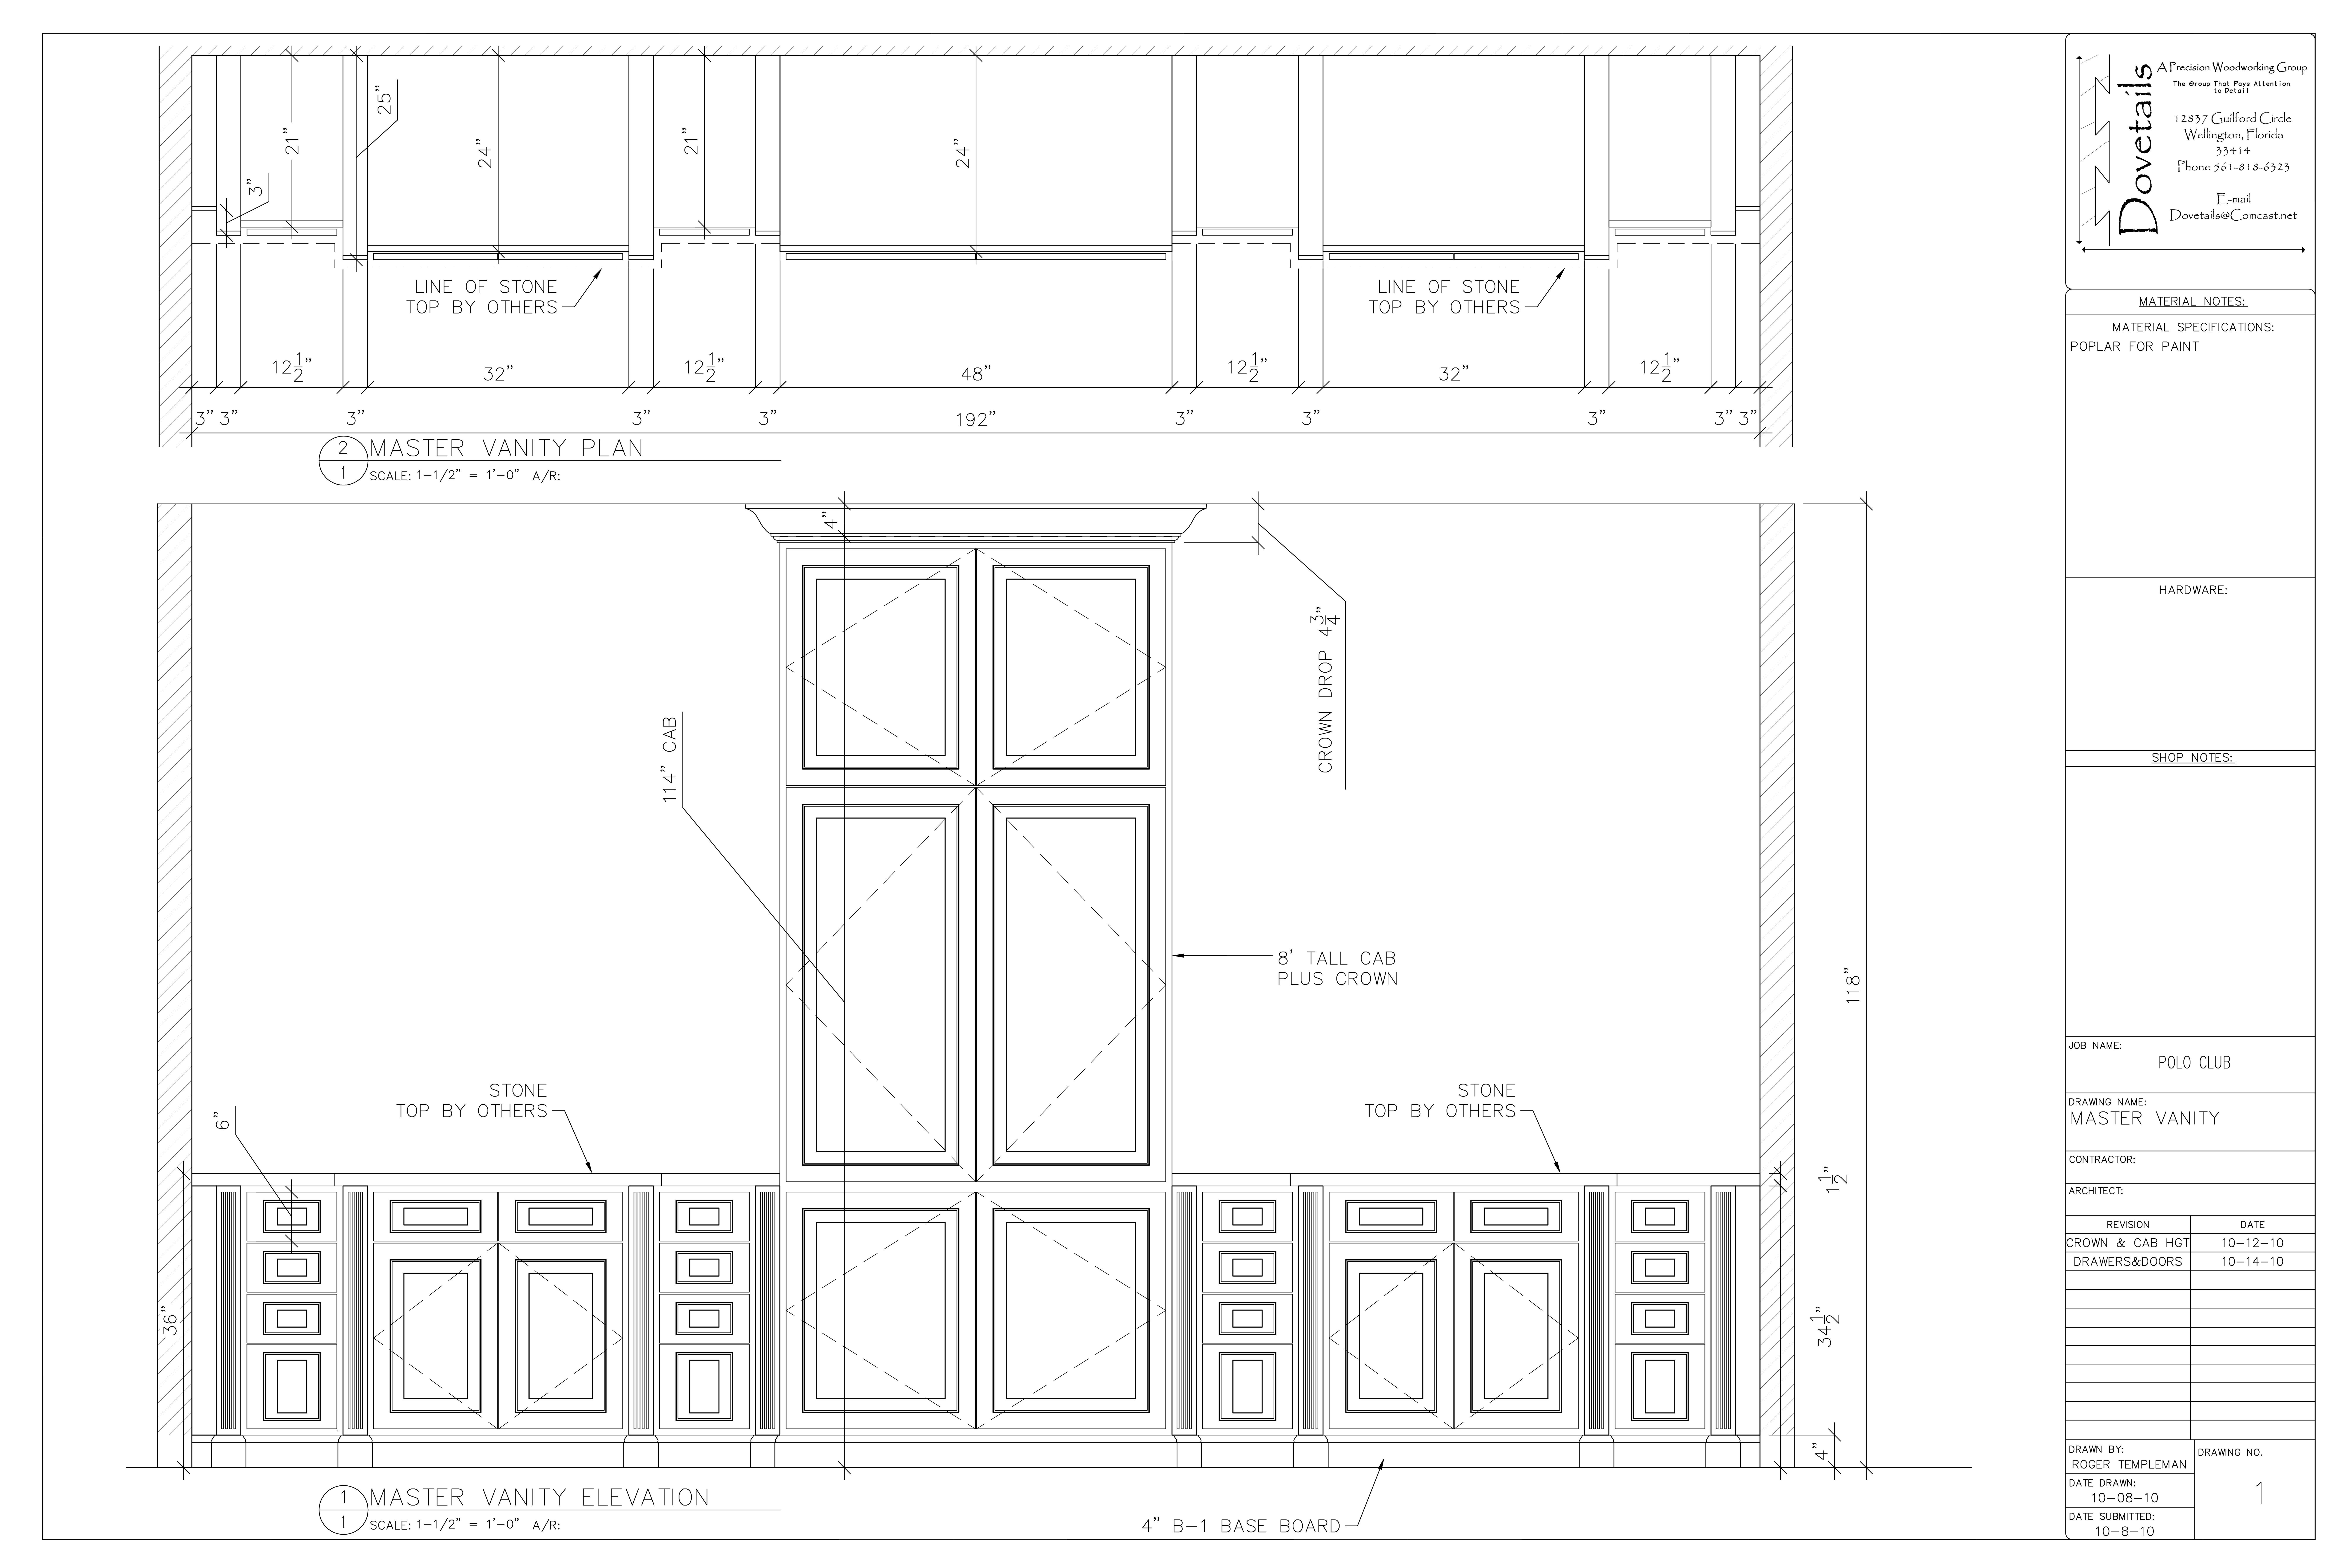 VANITY MILLWORK SHOP DRAWING POLO CLUB